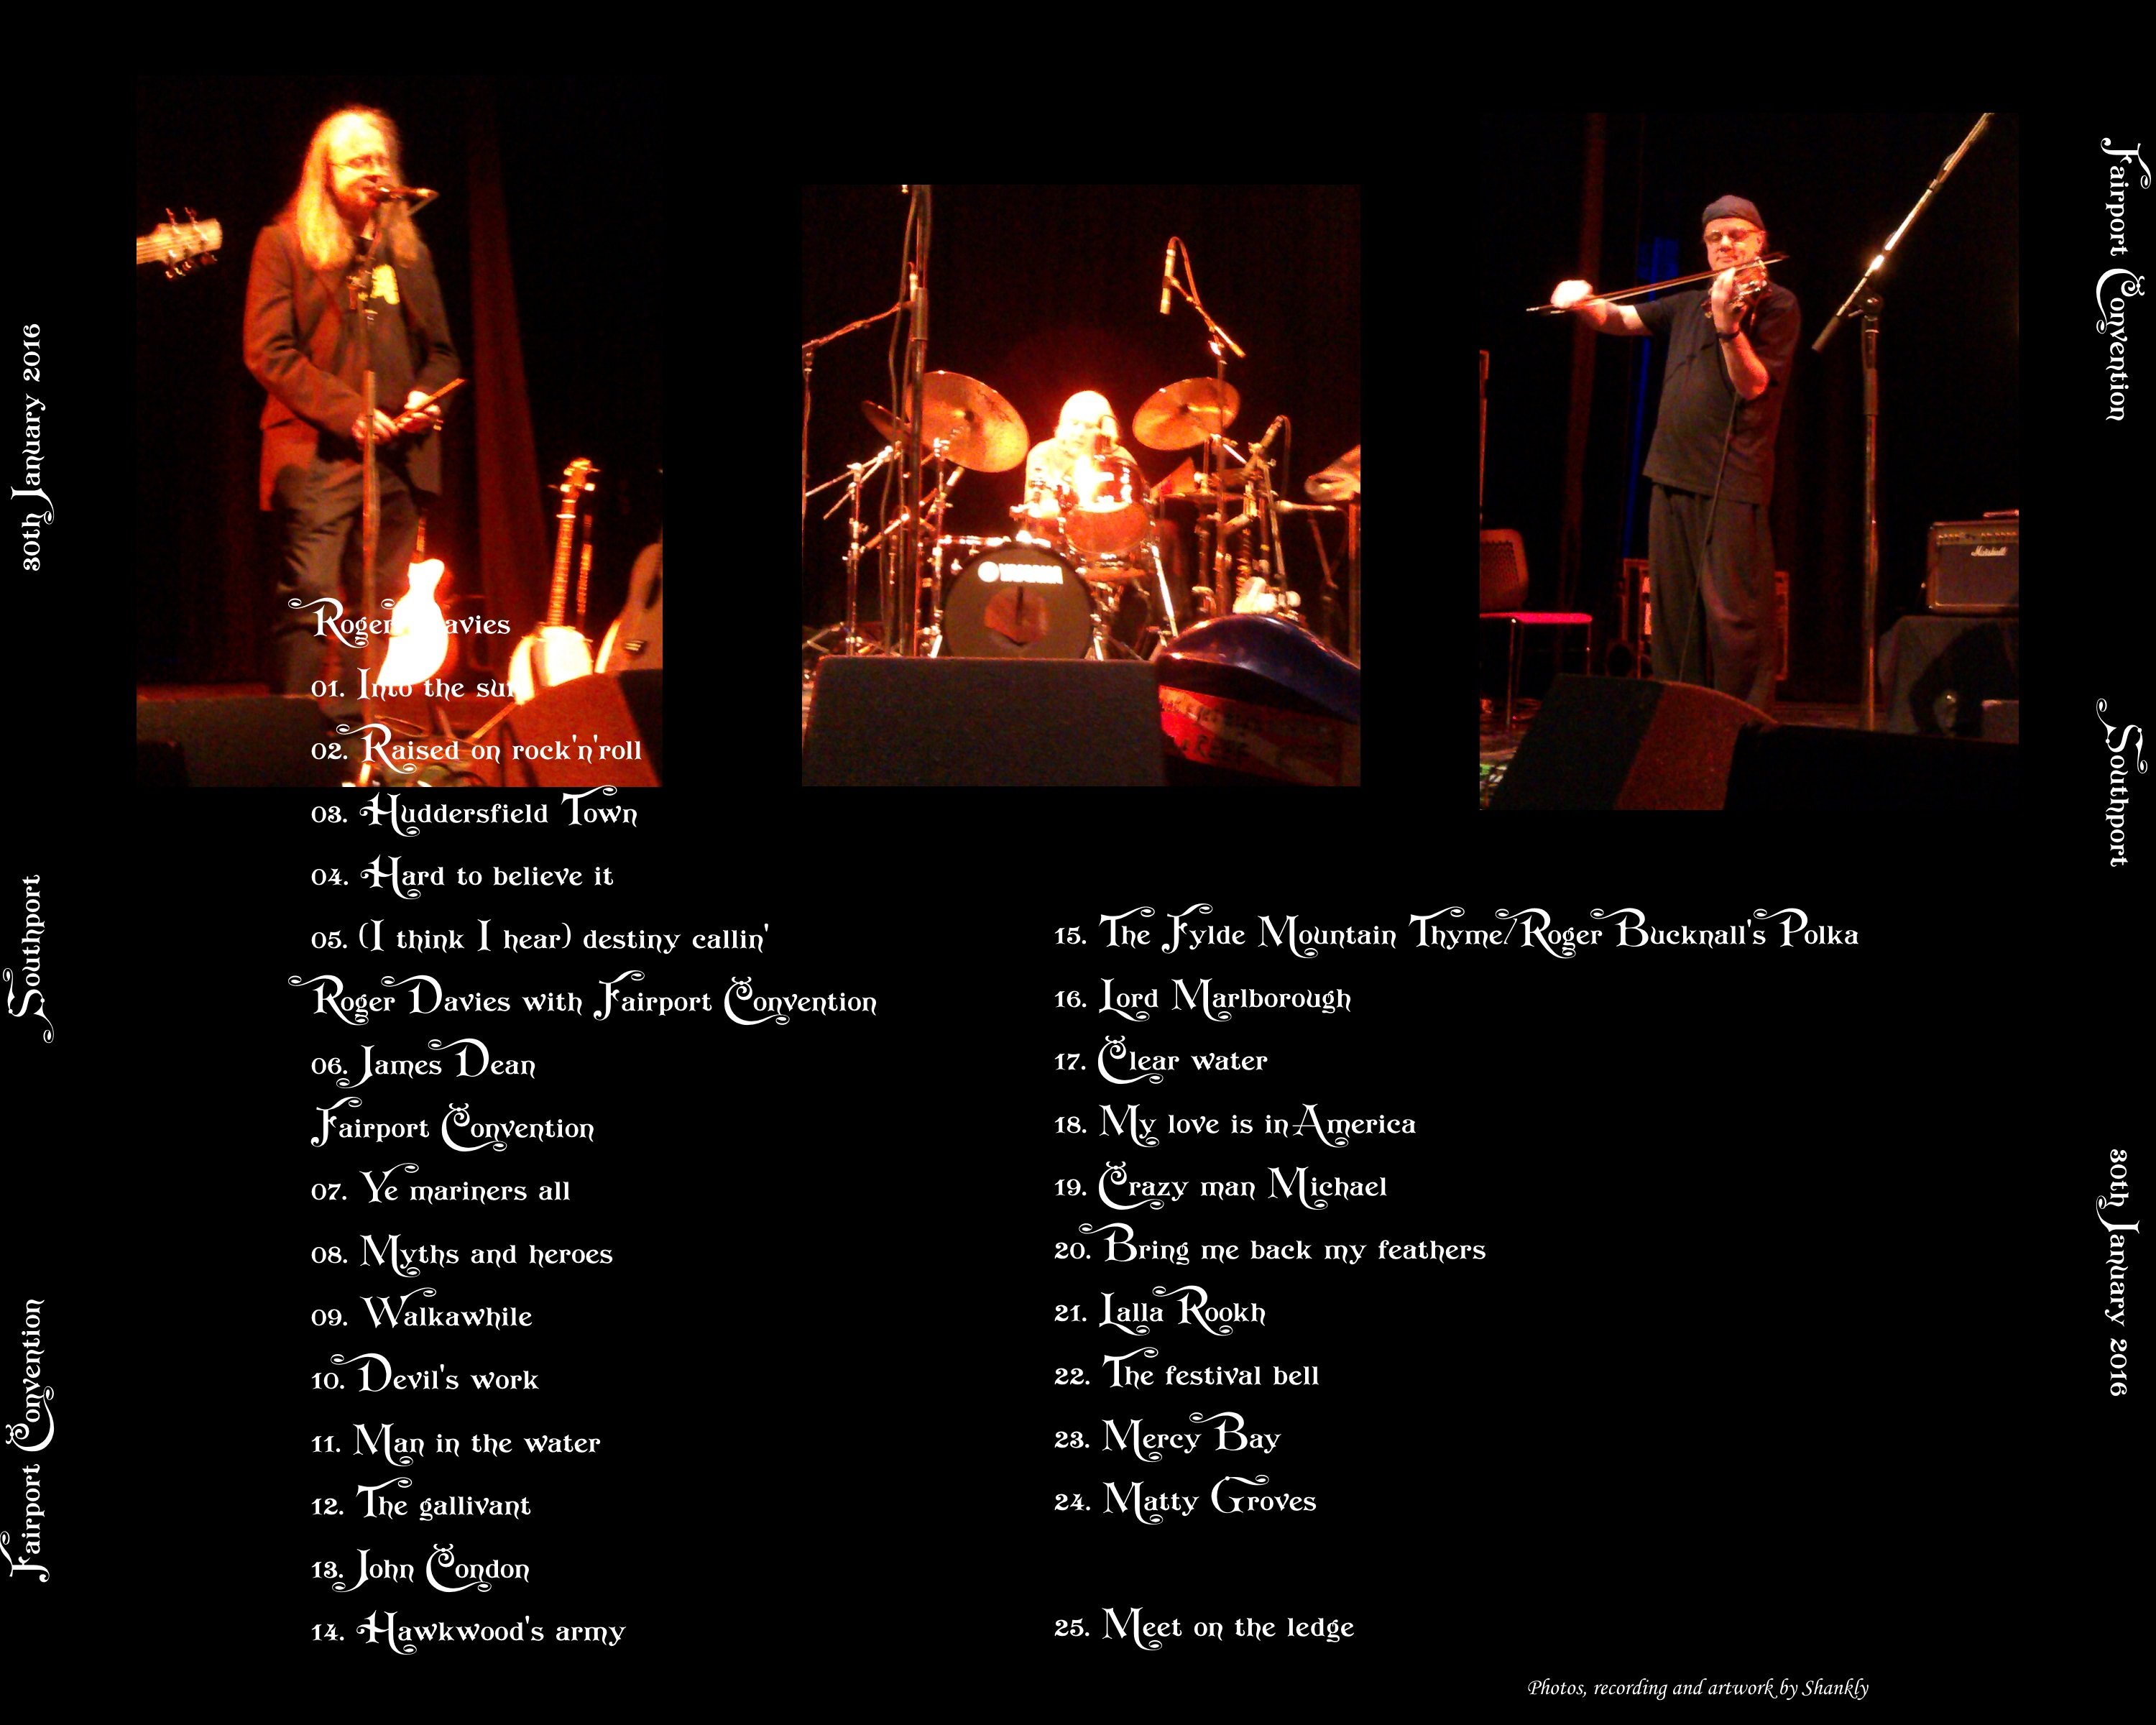 FairportConvention2016-01-30TheAtkinsonSouthportUK. (2).jpg